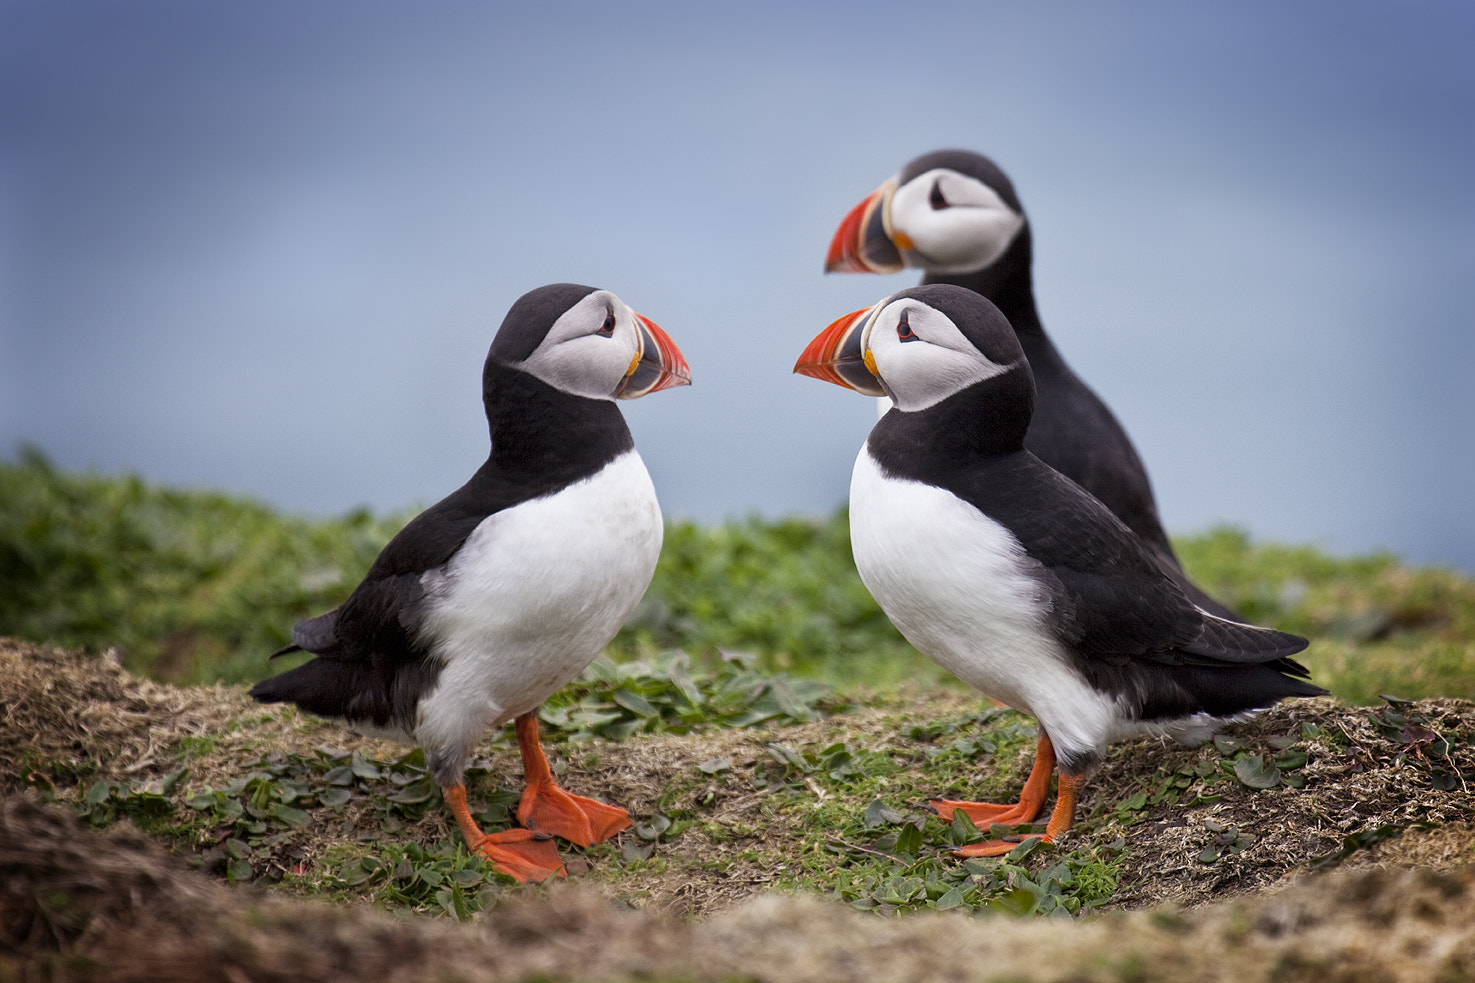 Photograph Hanging out with the guys by Alun Davies on 500px